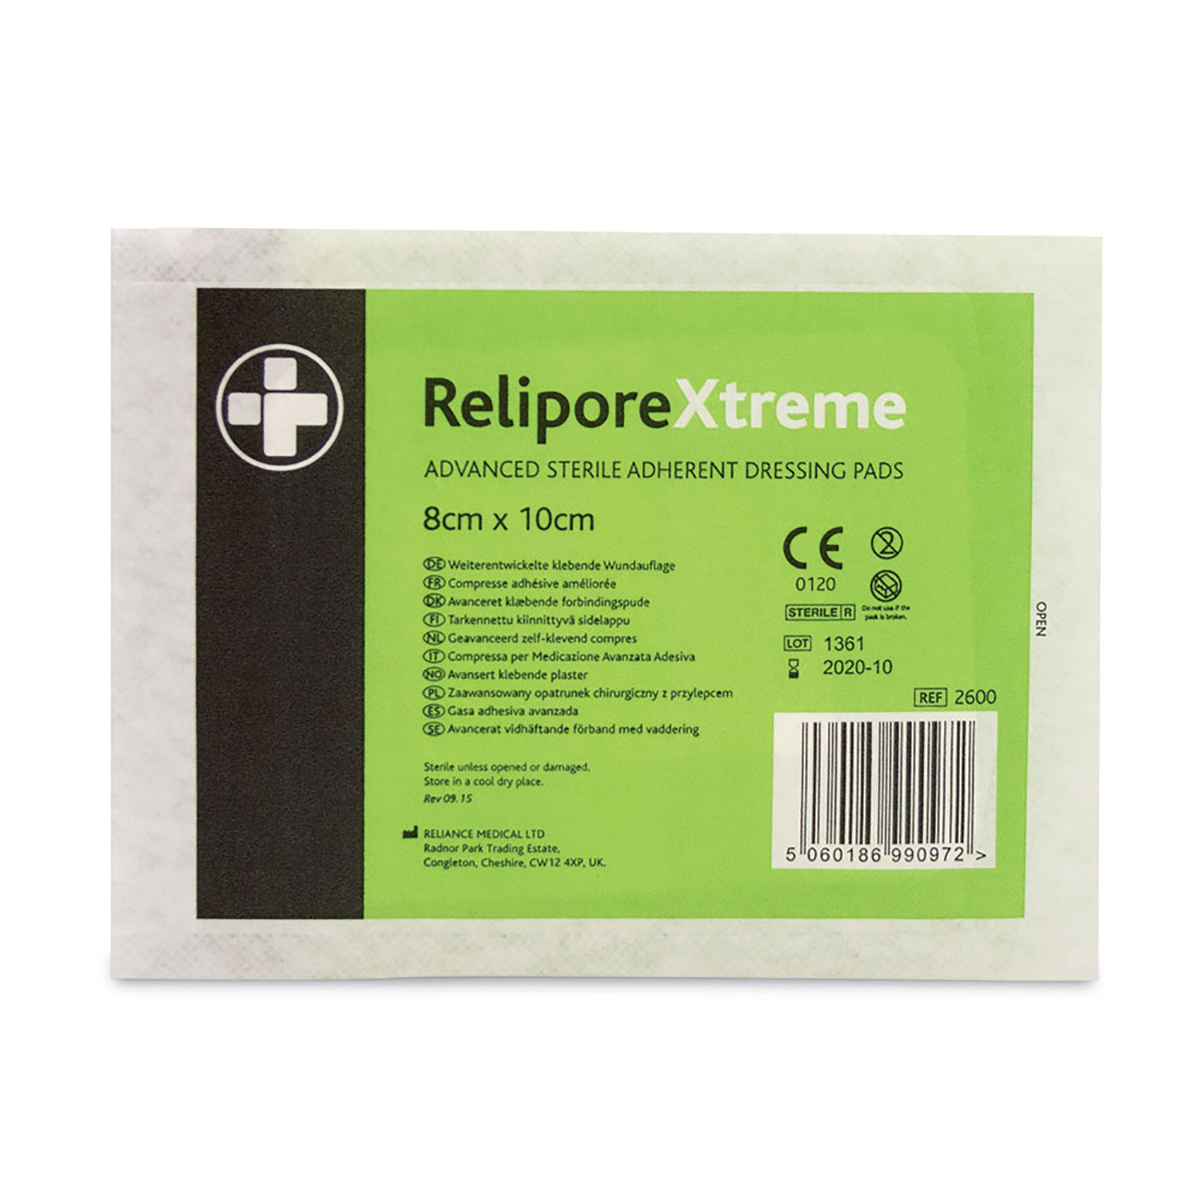 Pack of 50 8cm x 10cm ReliporeXtreme Dressing Pad